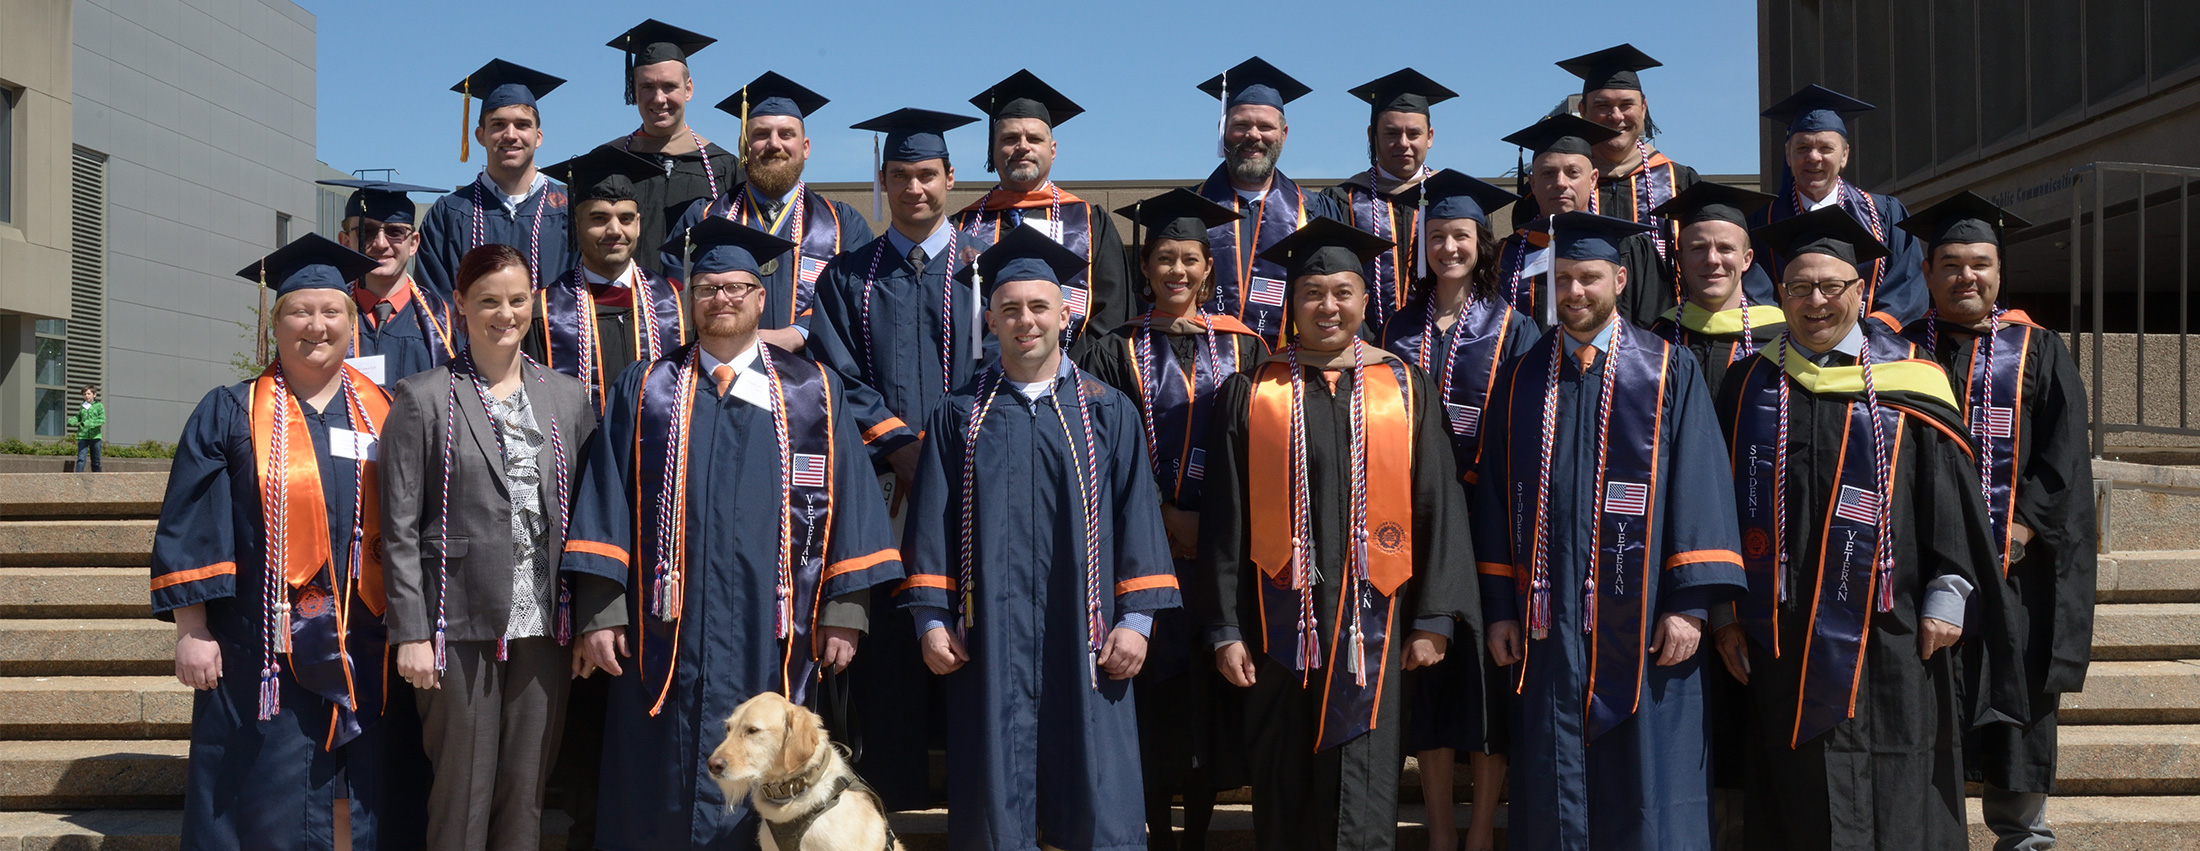 Student veterans organization (SVO) at the 2018 Commencement